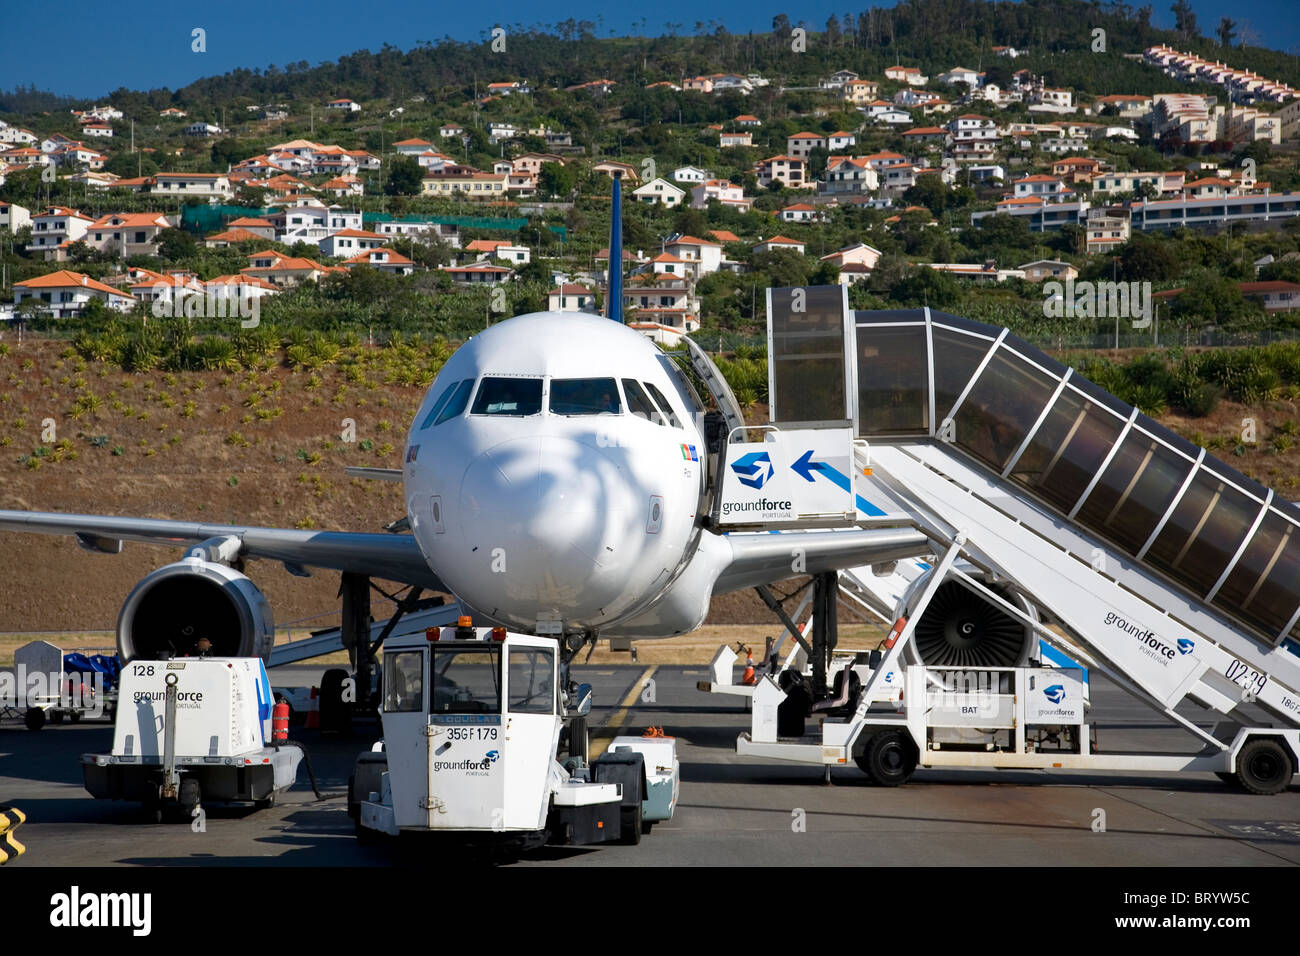 Sata Plane at Funchal Airport - Stock Image